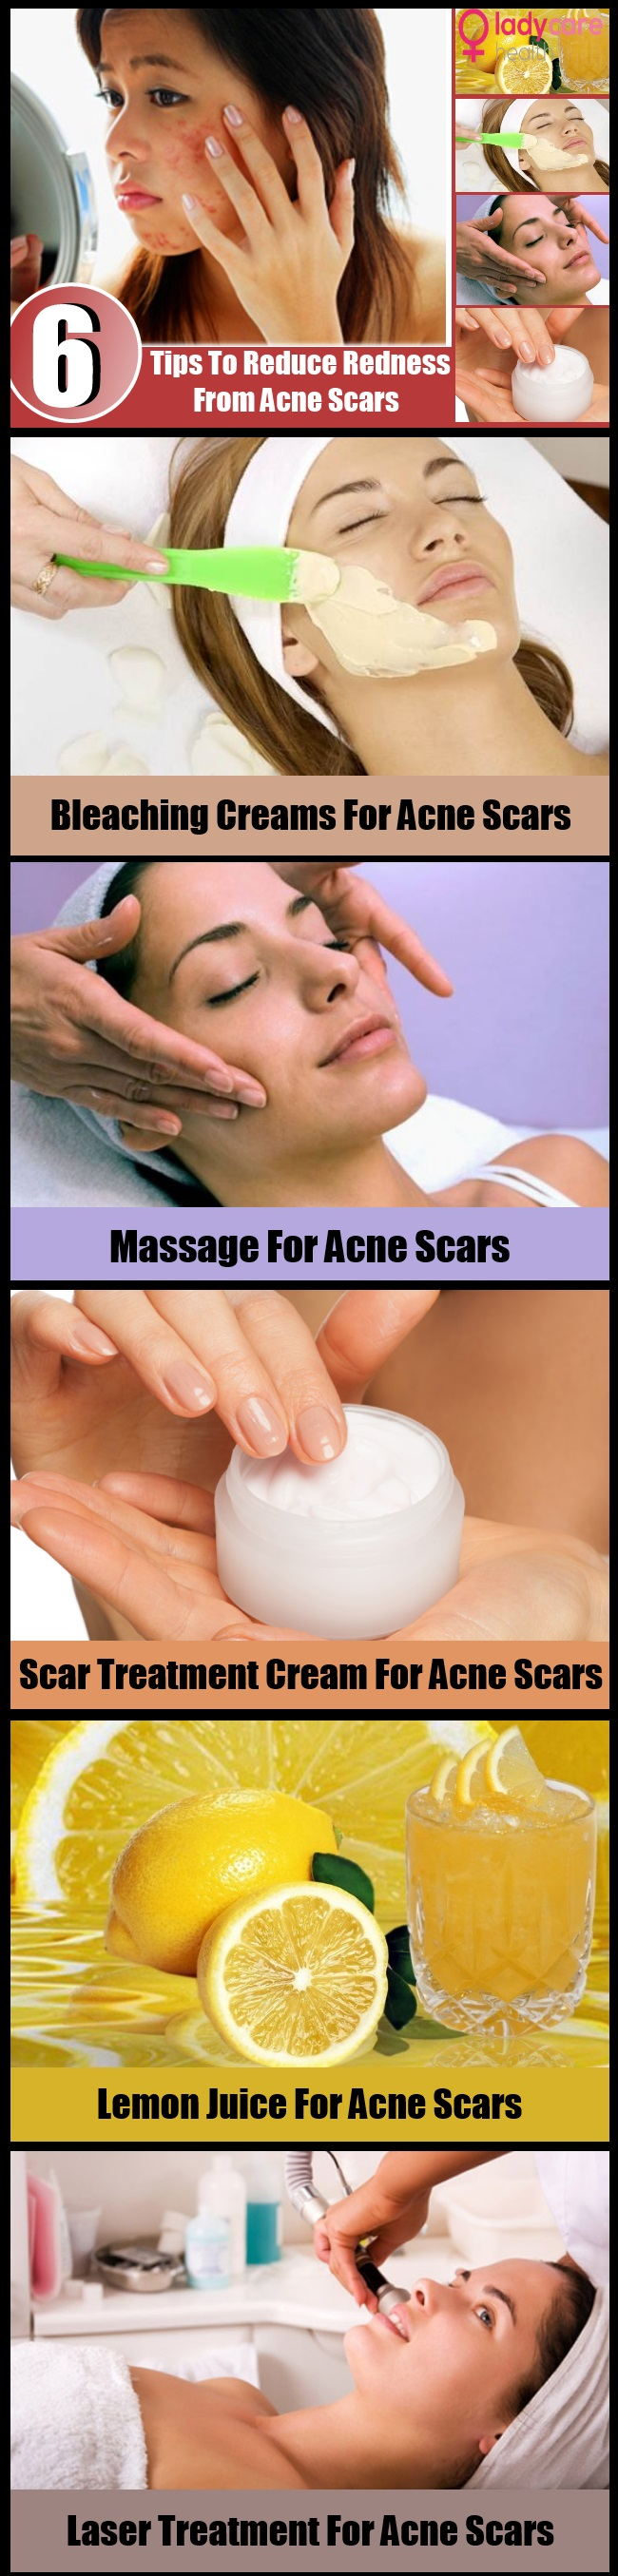 6 Tips To Reduce Redness From Acne Scars